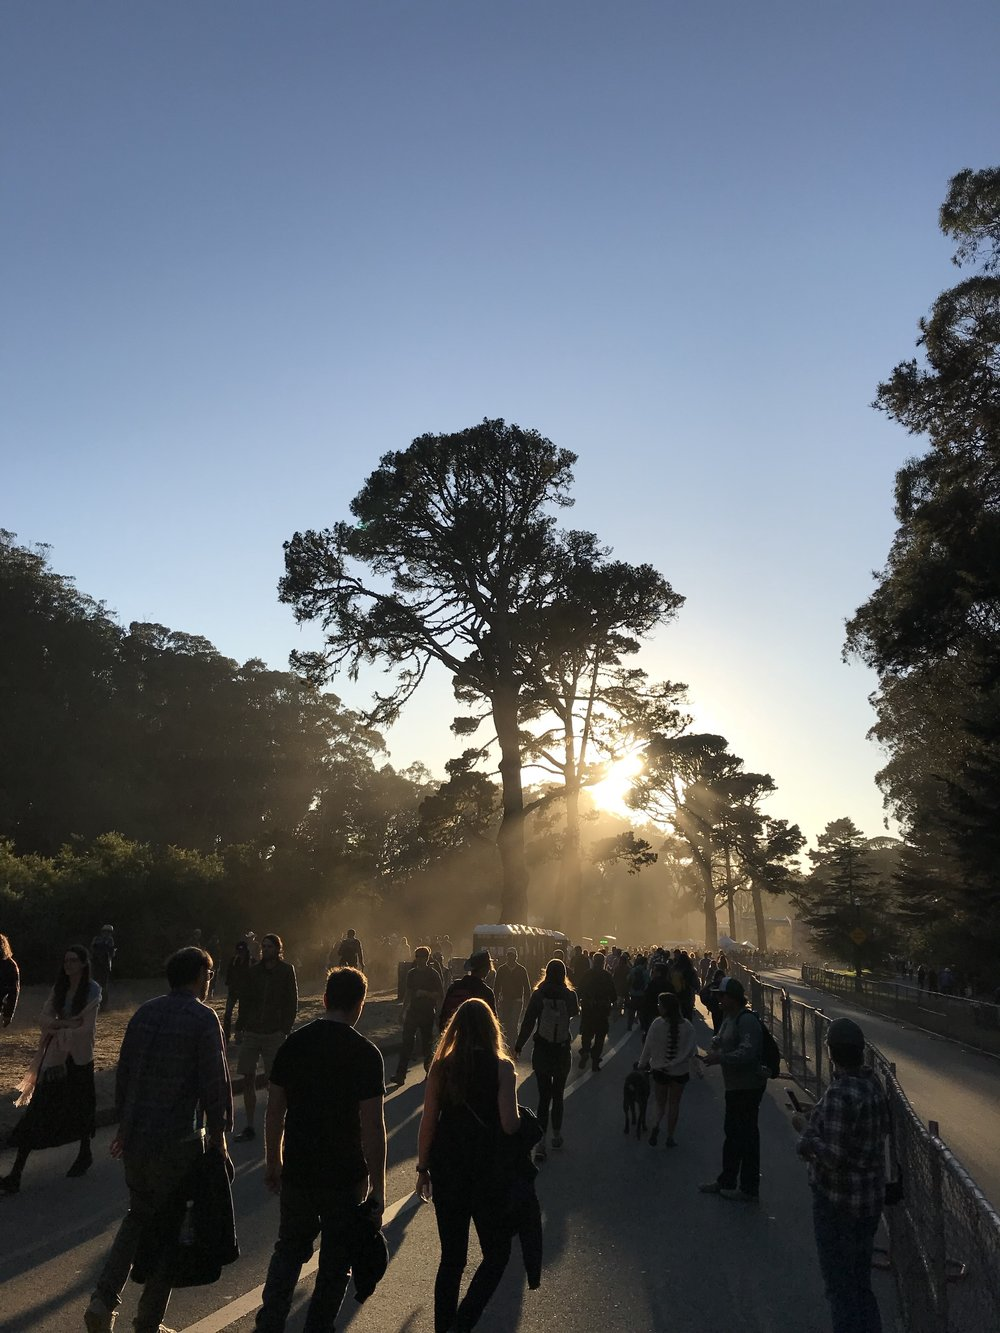 Hardly Strictly Bluegrass festival, Golden Gate Park, Friday, October, 6, 2017. Photograph courtesy of the author.